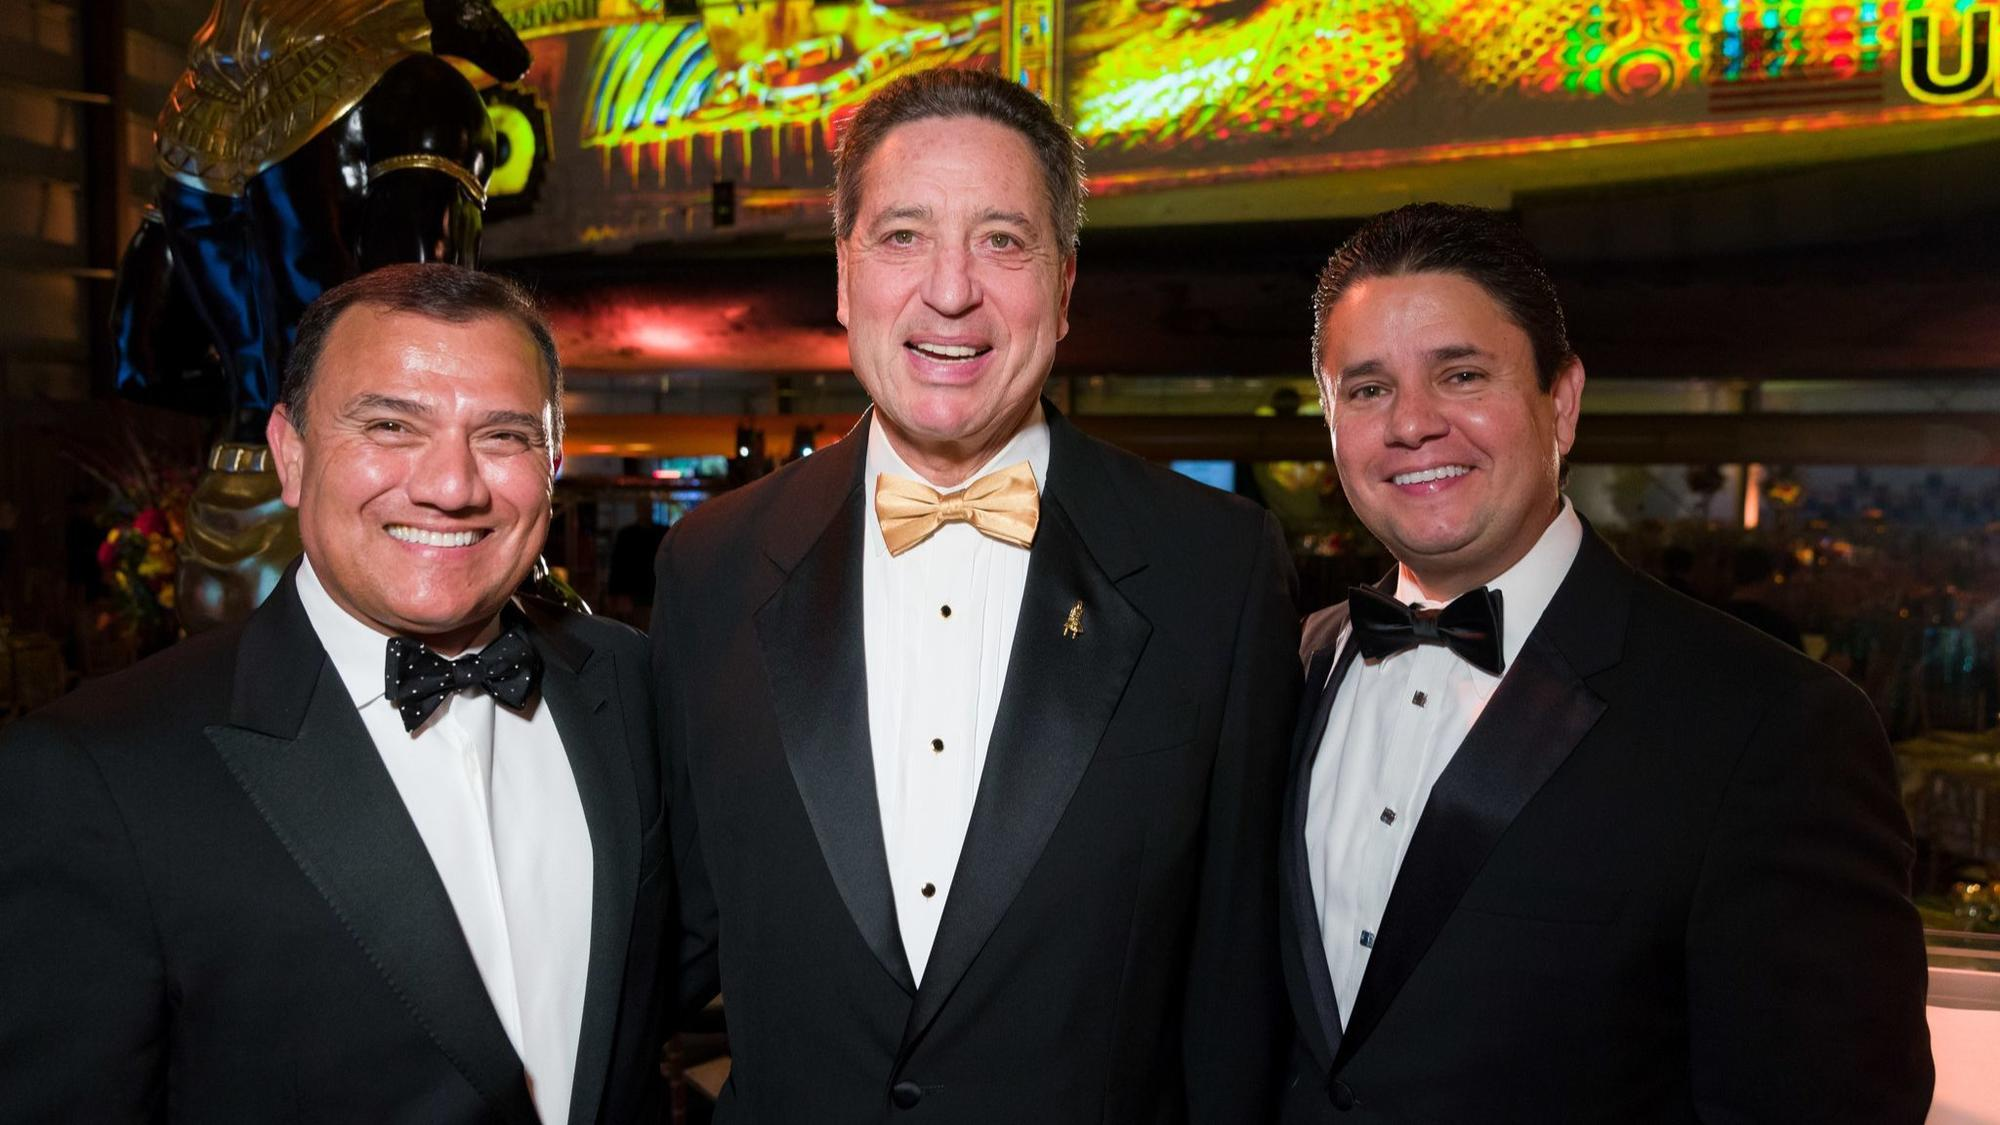 Event co-chairs Raul Anaya and Dennis Arriola with and without Jeffrey Rudolph, president and chief executive officer of the California Science Center.